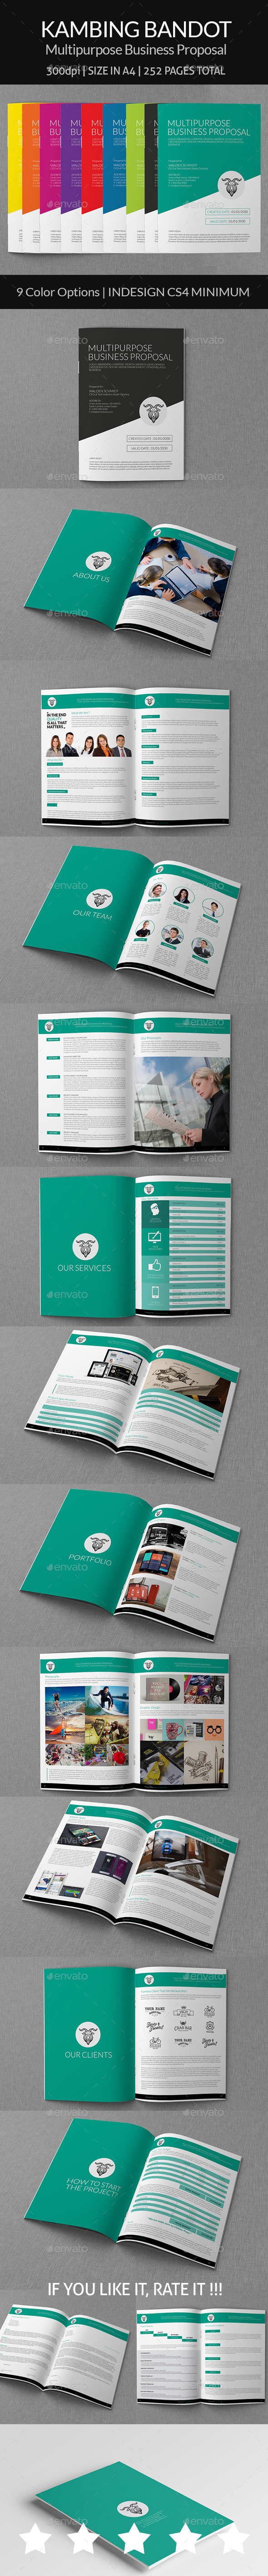 GraphicRiver Kambing Bandot Multipurpose Business Proposal 8920912